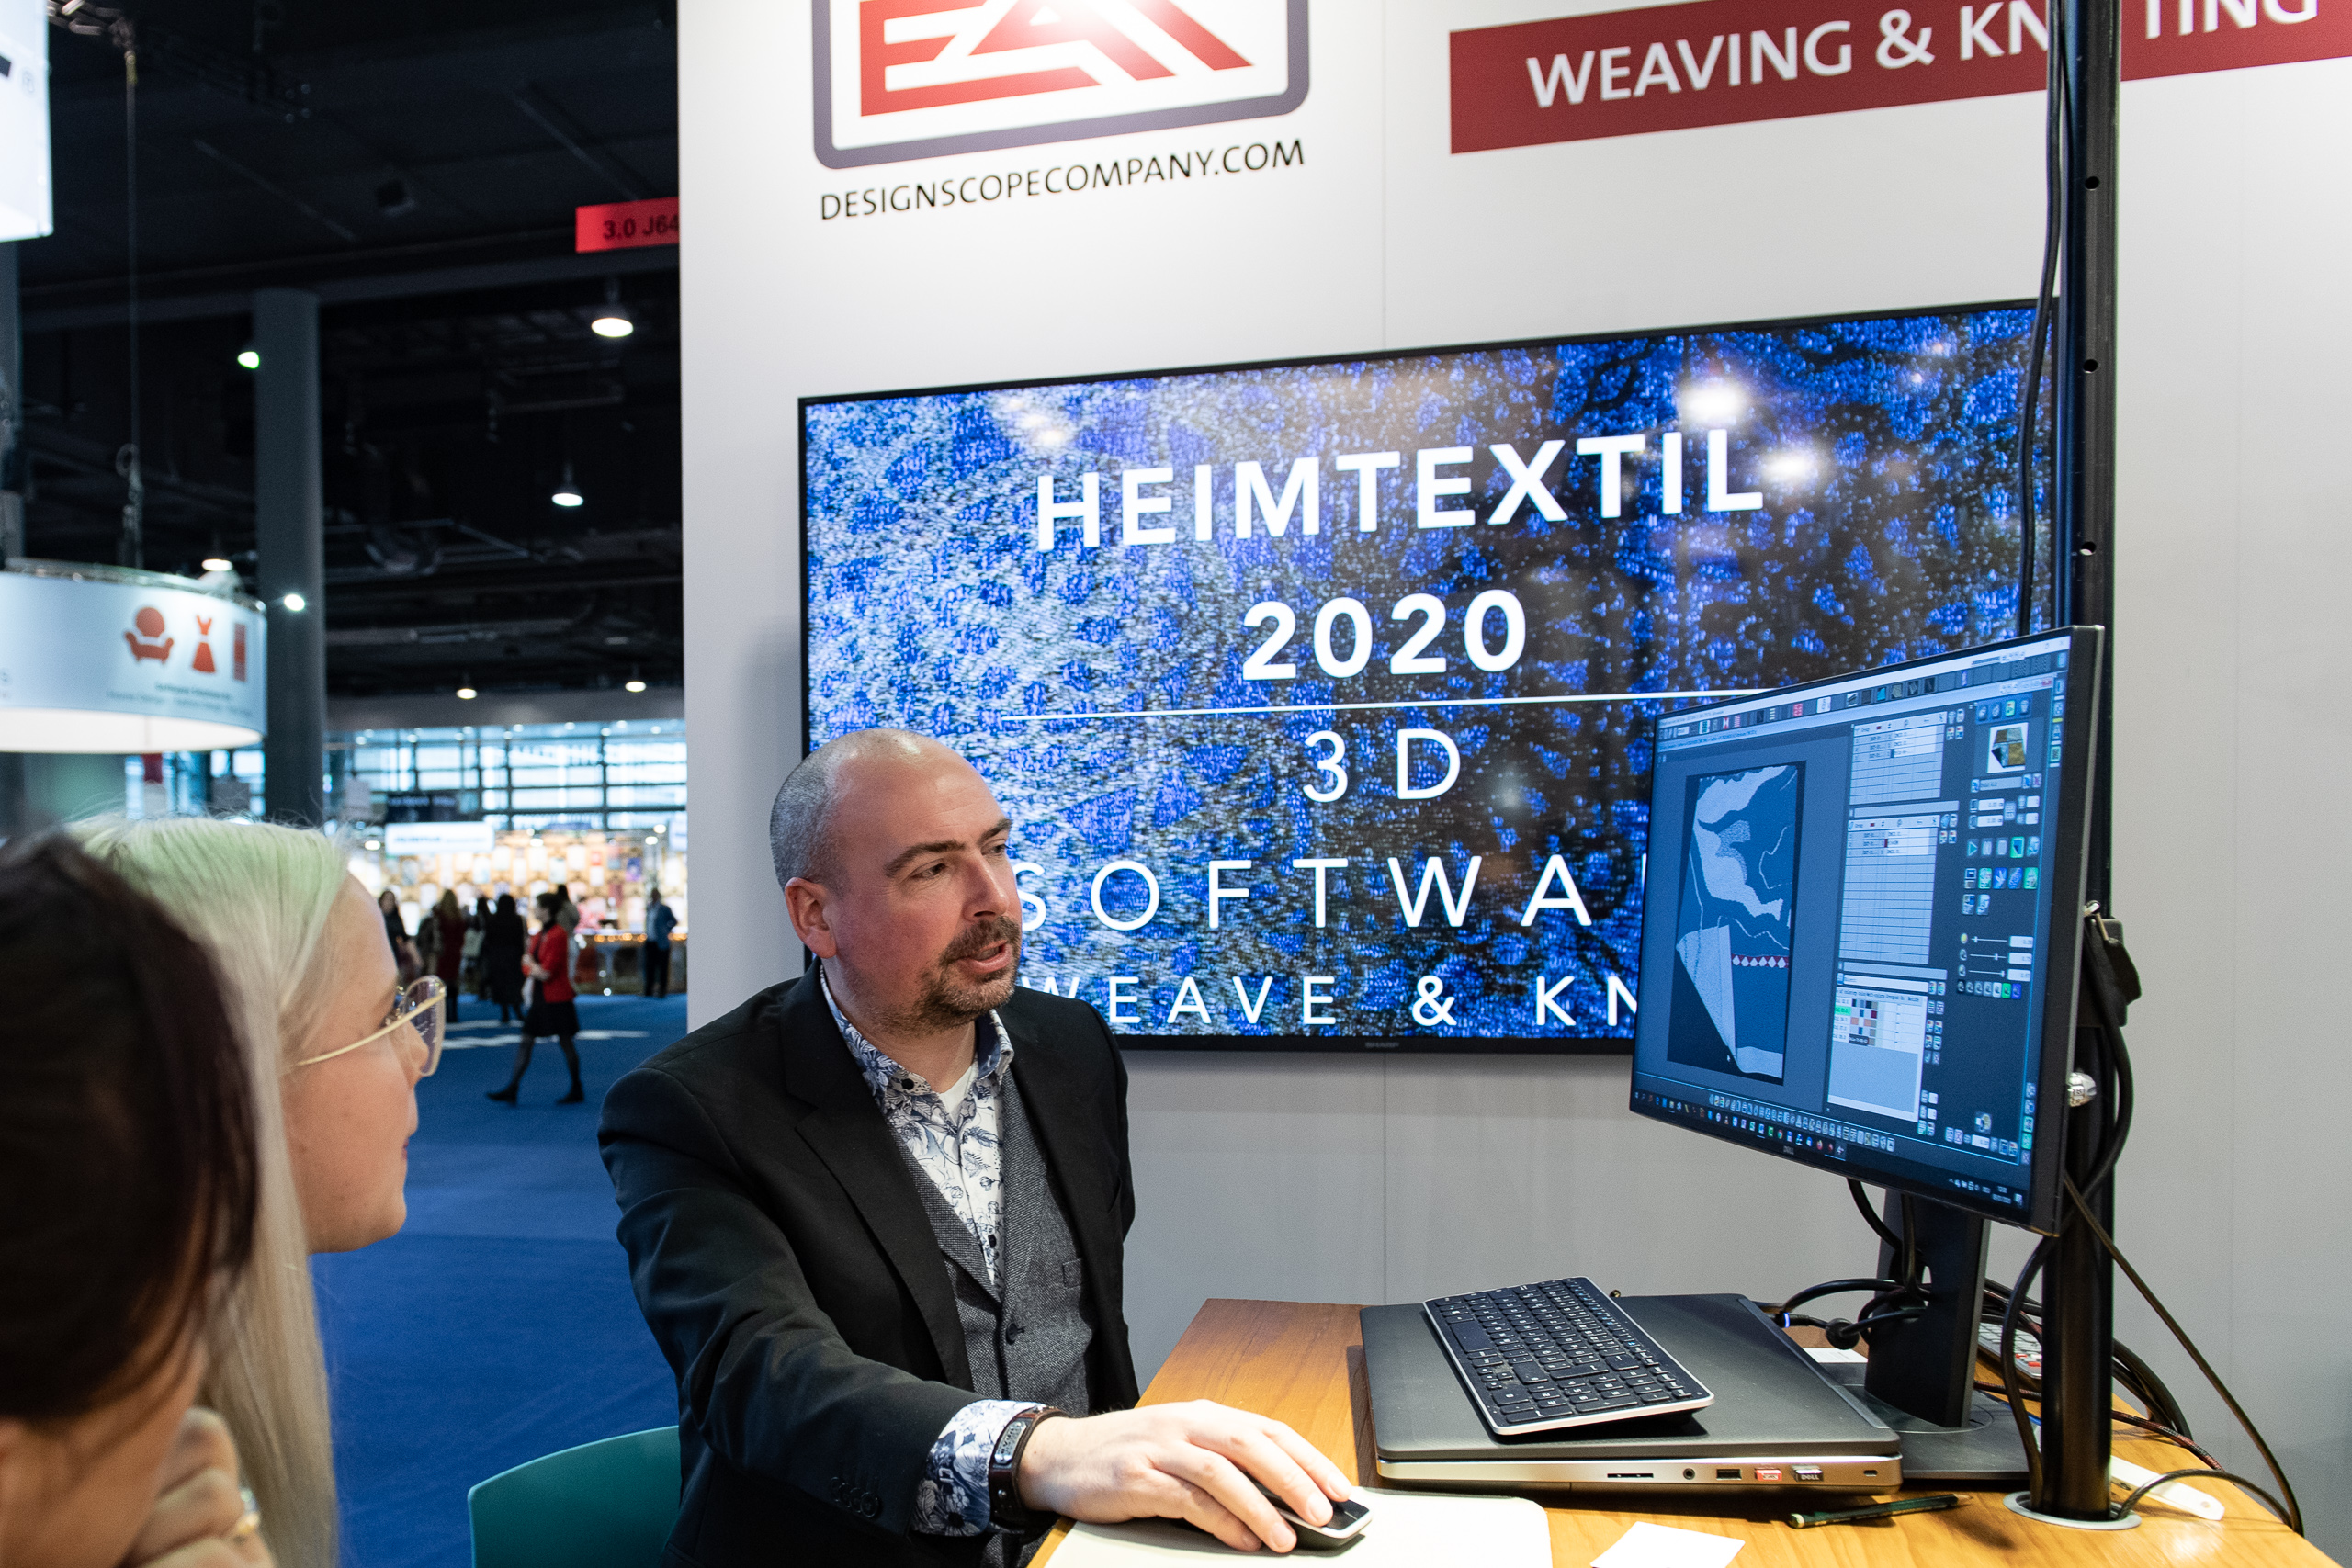 Textile Technology, software